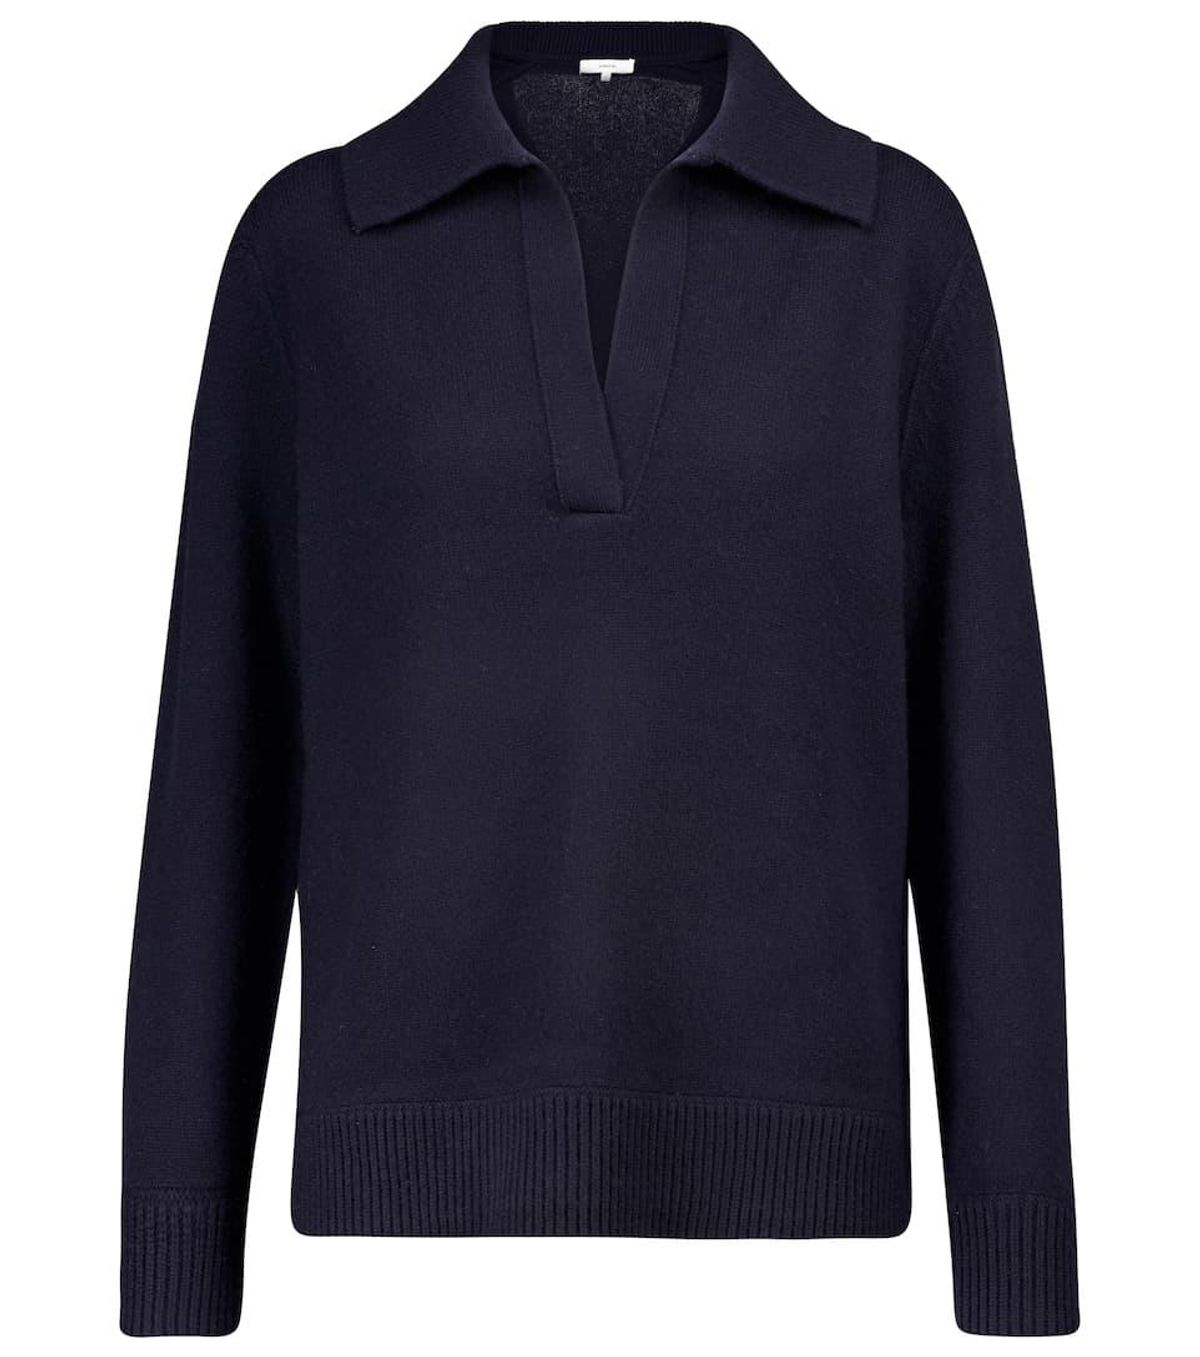 Wool and Cashmere Polo Sweater